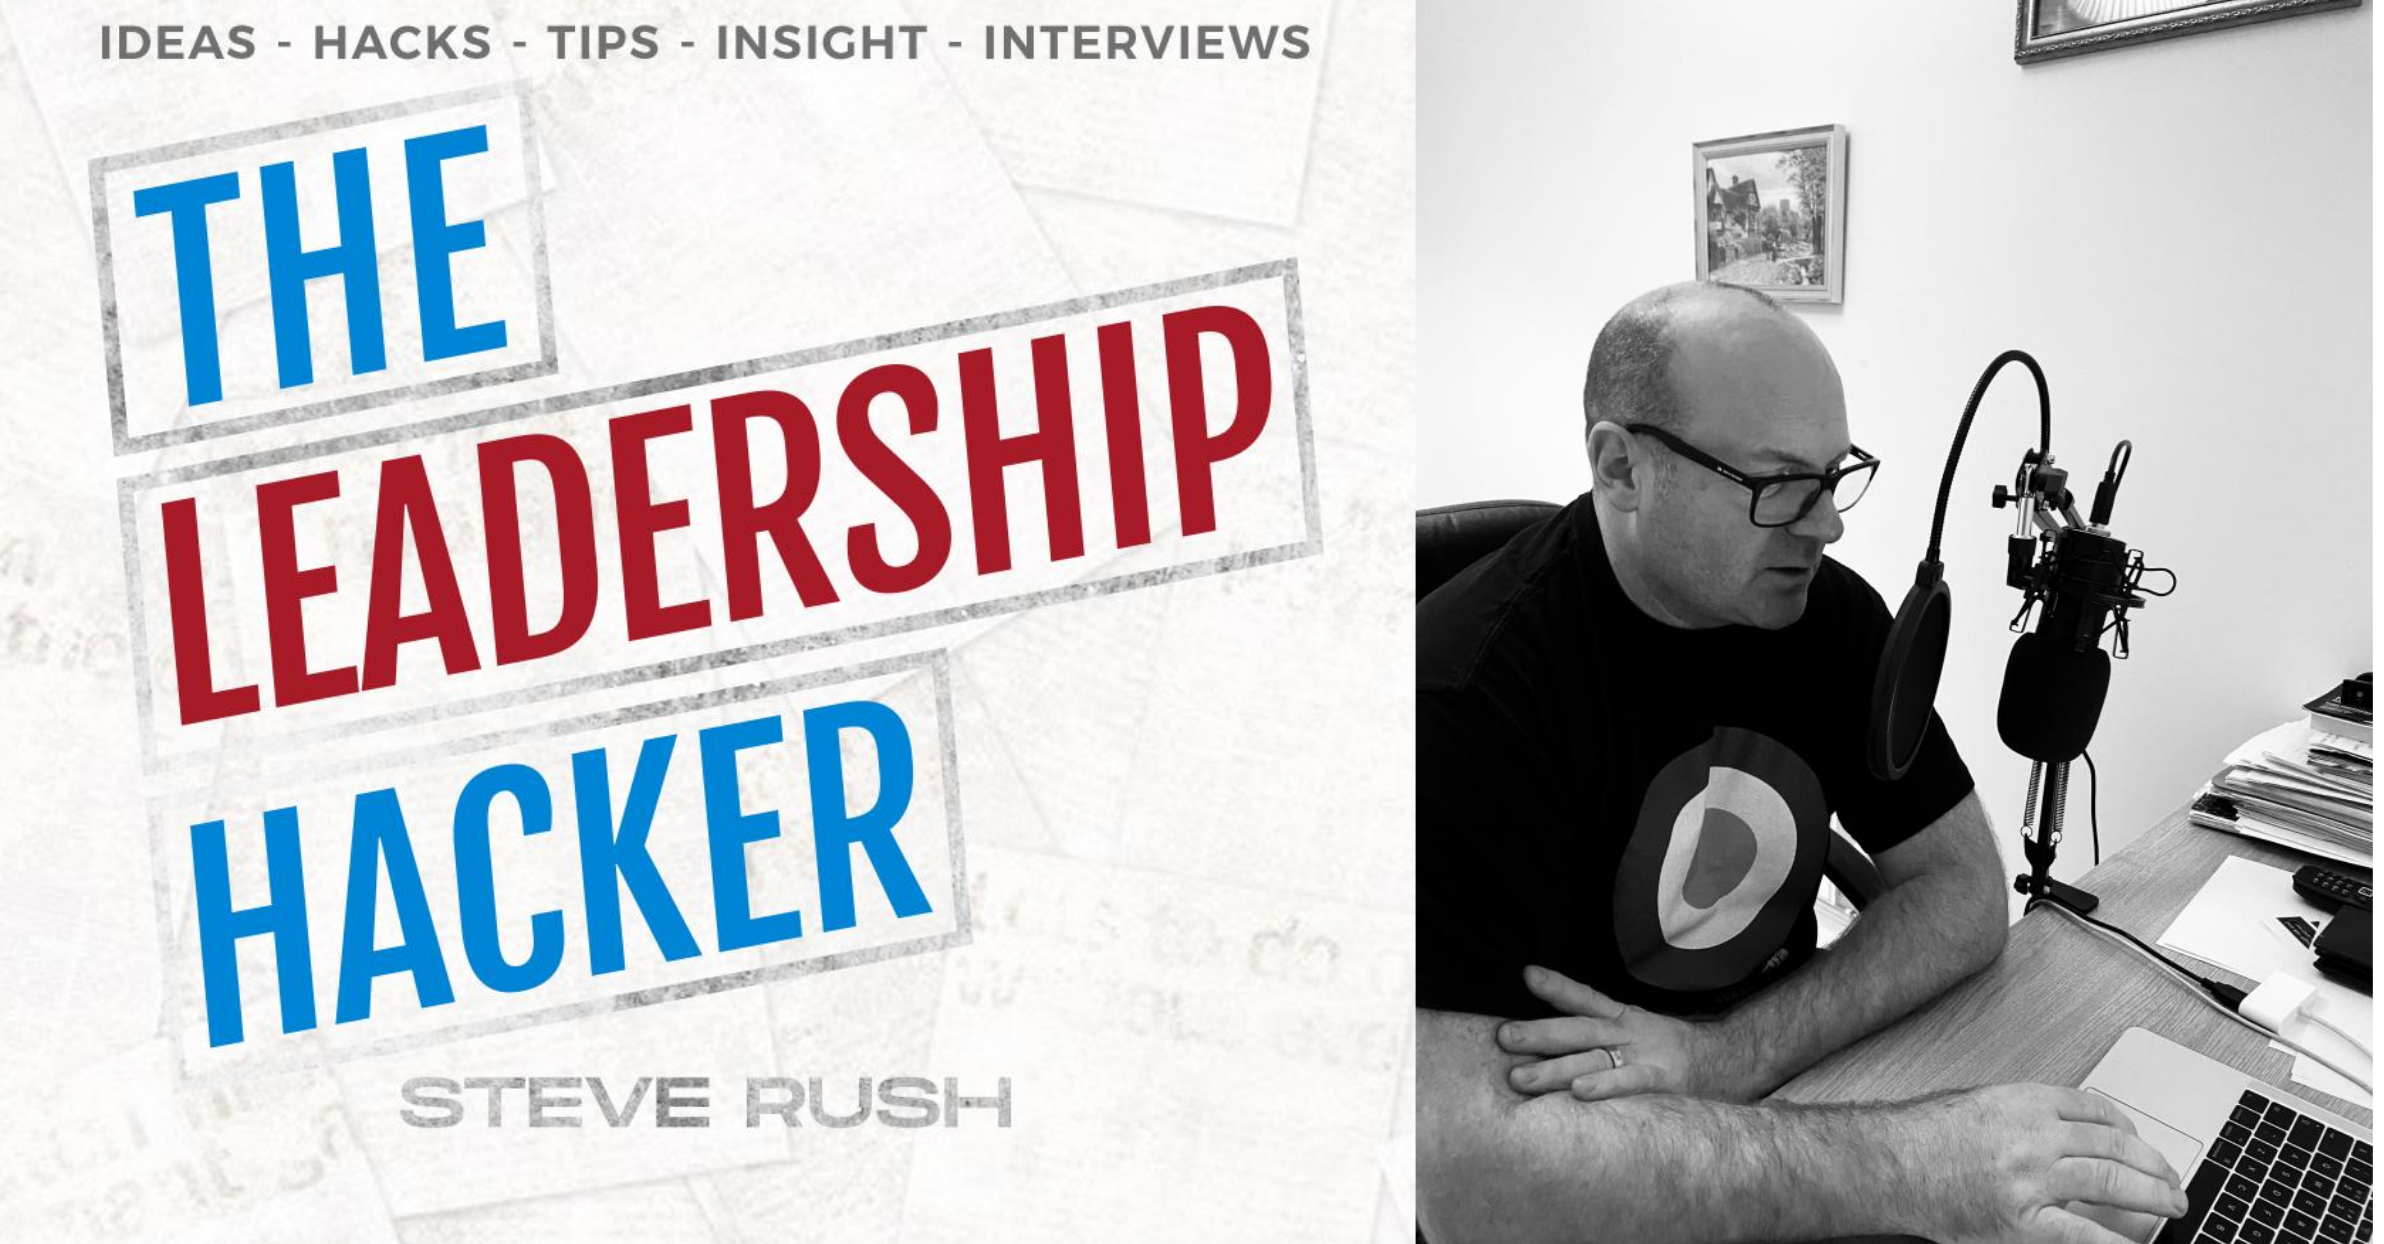 The Leadership Hacker Goes Live In March 2020